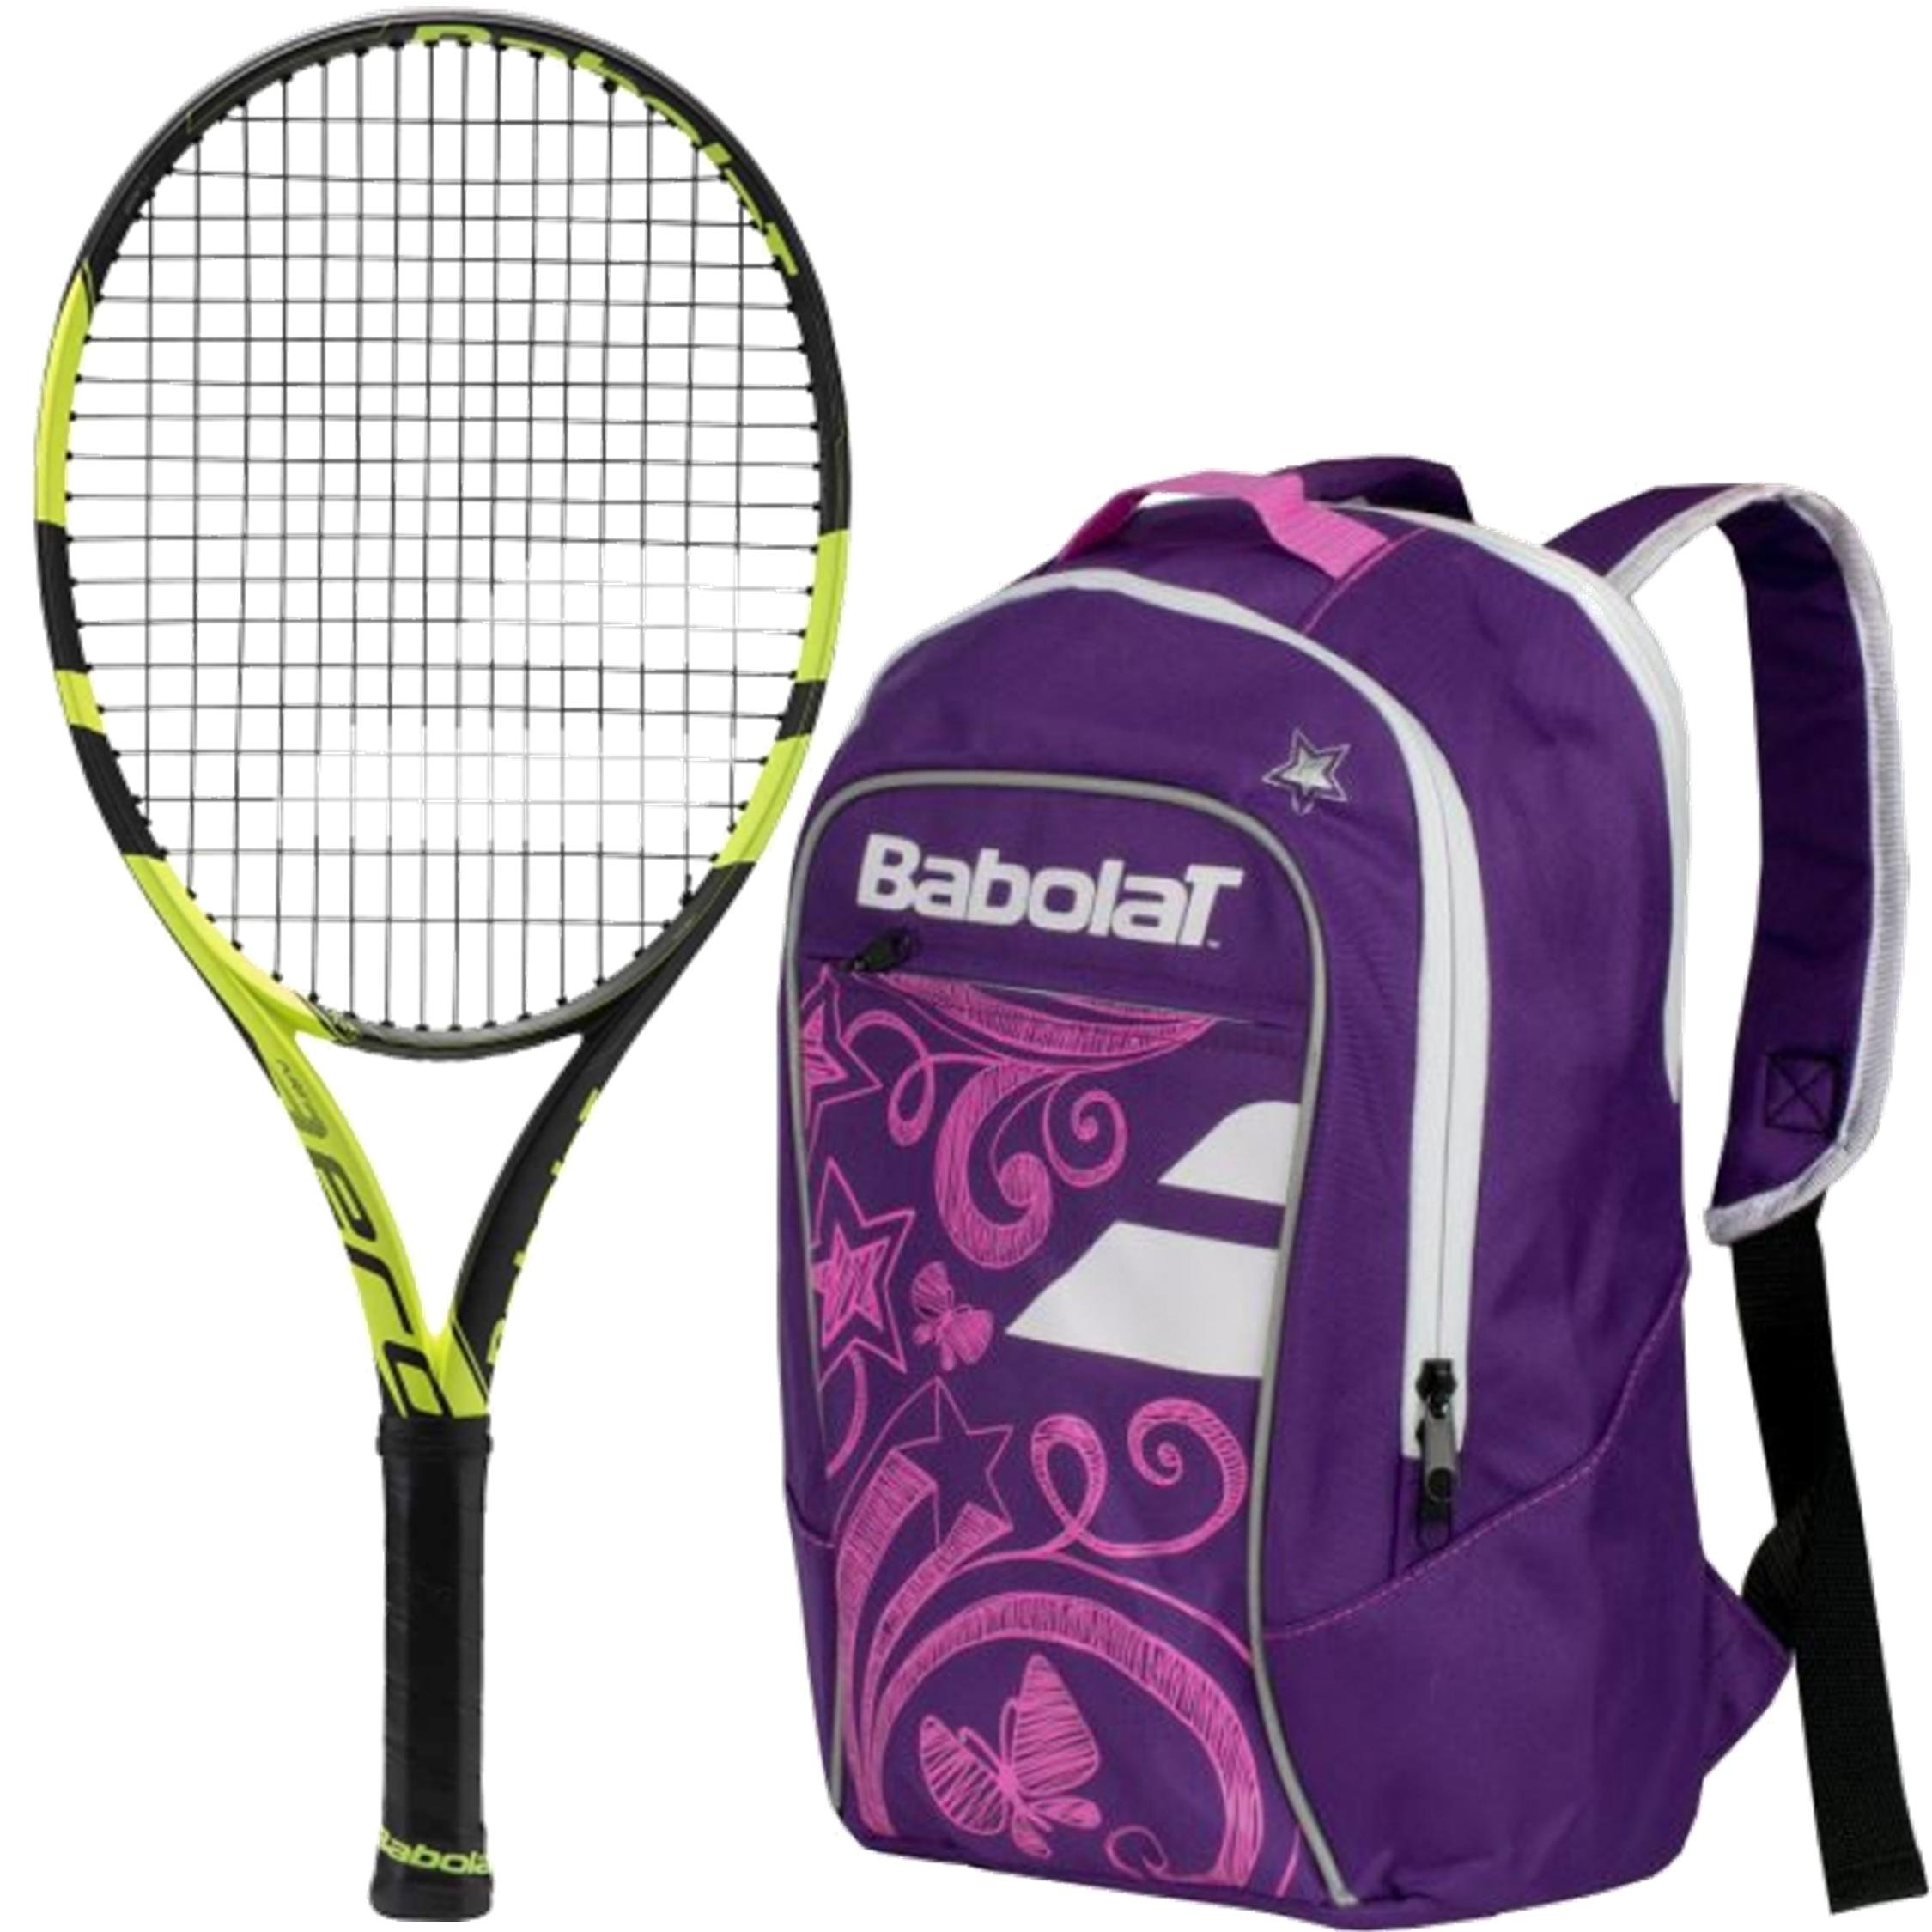 Babolat Pure Aero Junior 25'' Tennis Racquet (Black/Yellow) bundled with Girl's Club Tennis Backpack (Purple)